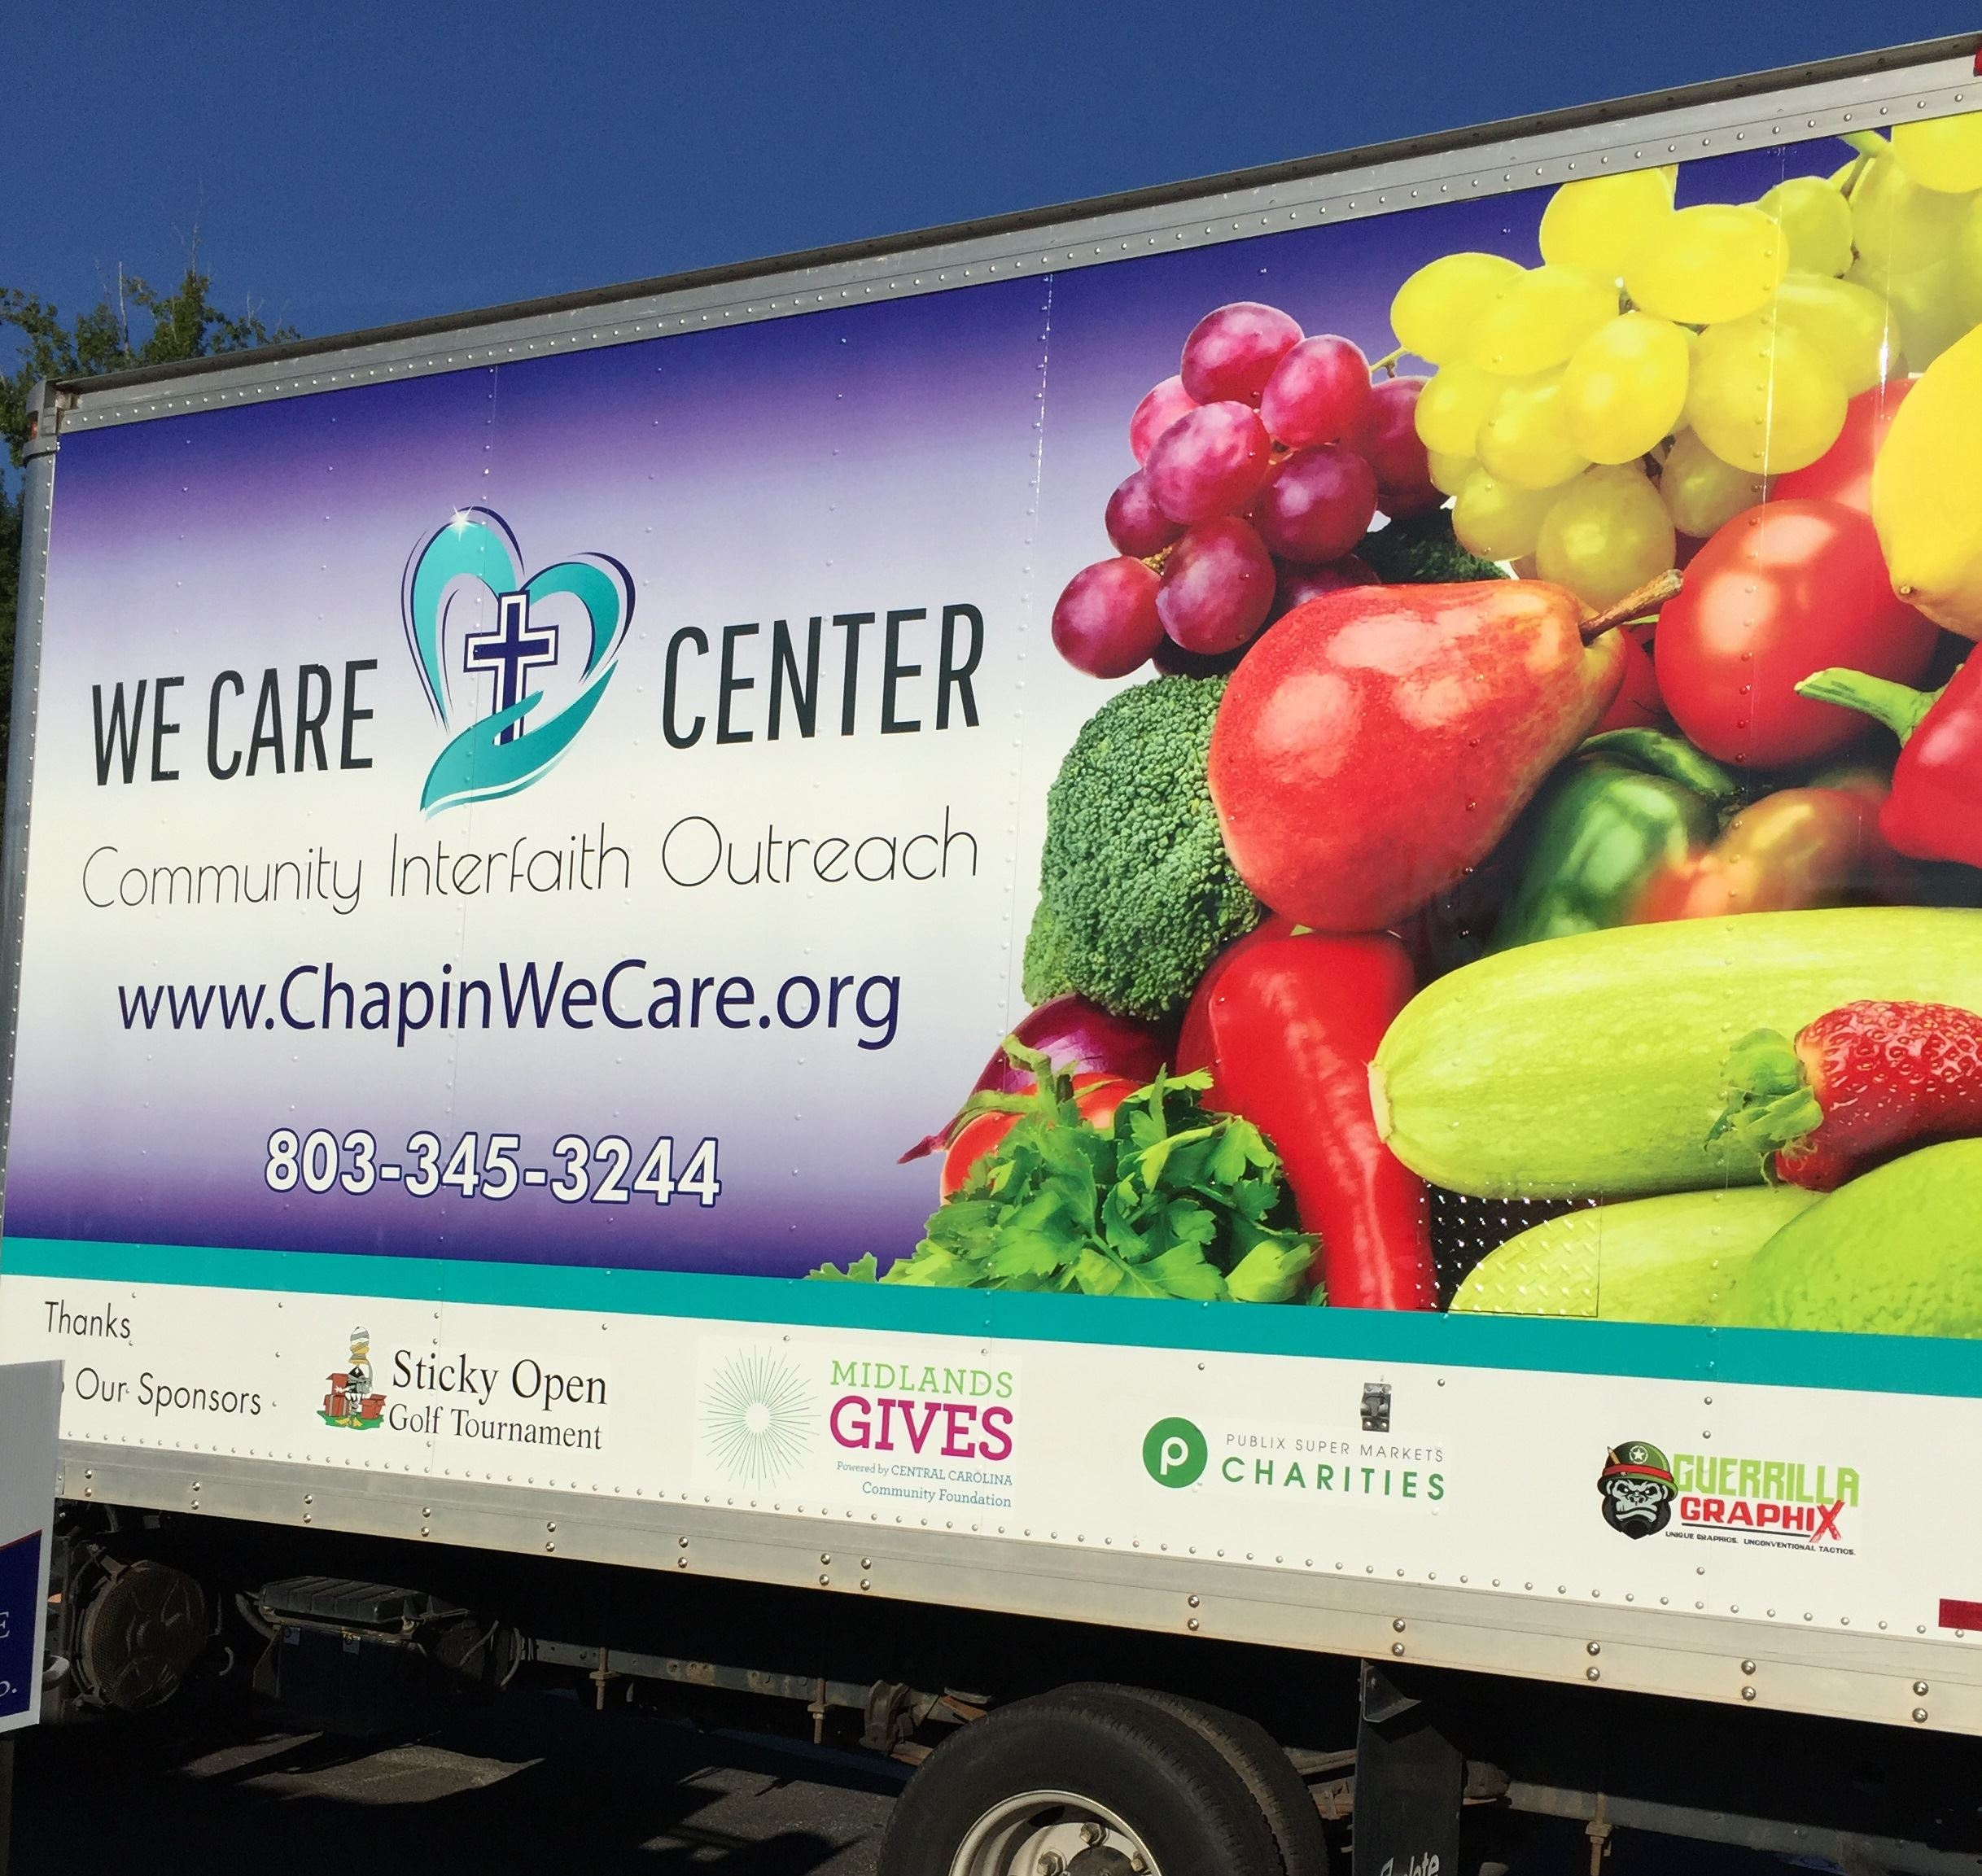 Chapin We Care's New Refrigerated Truck